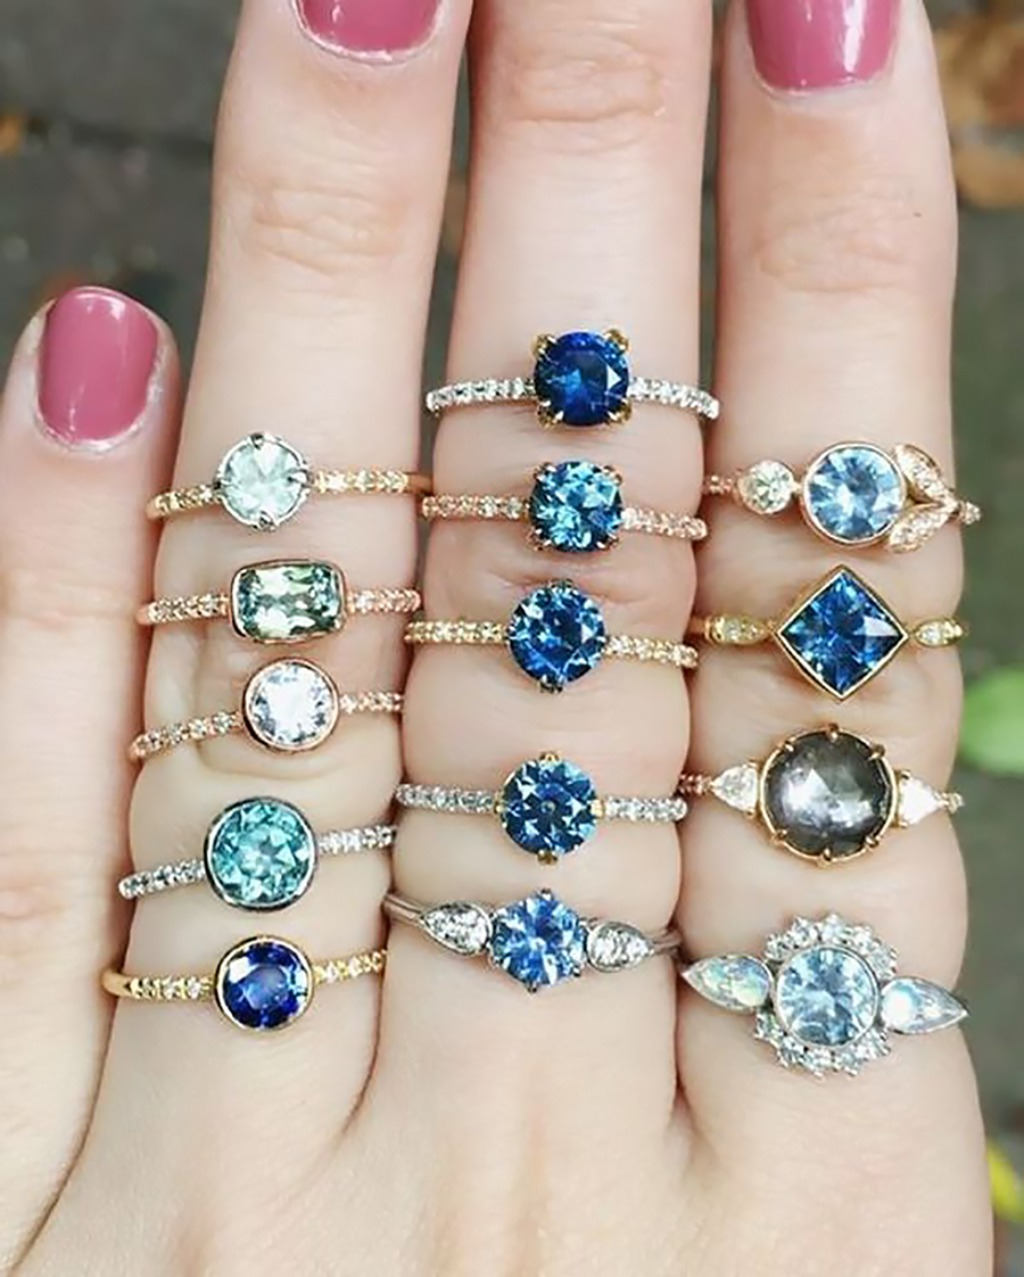 Montana sapphire, Teal Sapphire, Vintage and Modern Style Engagement Rings!!